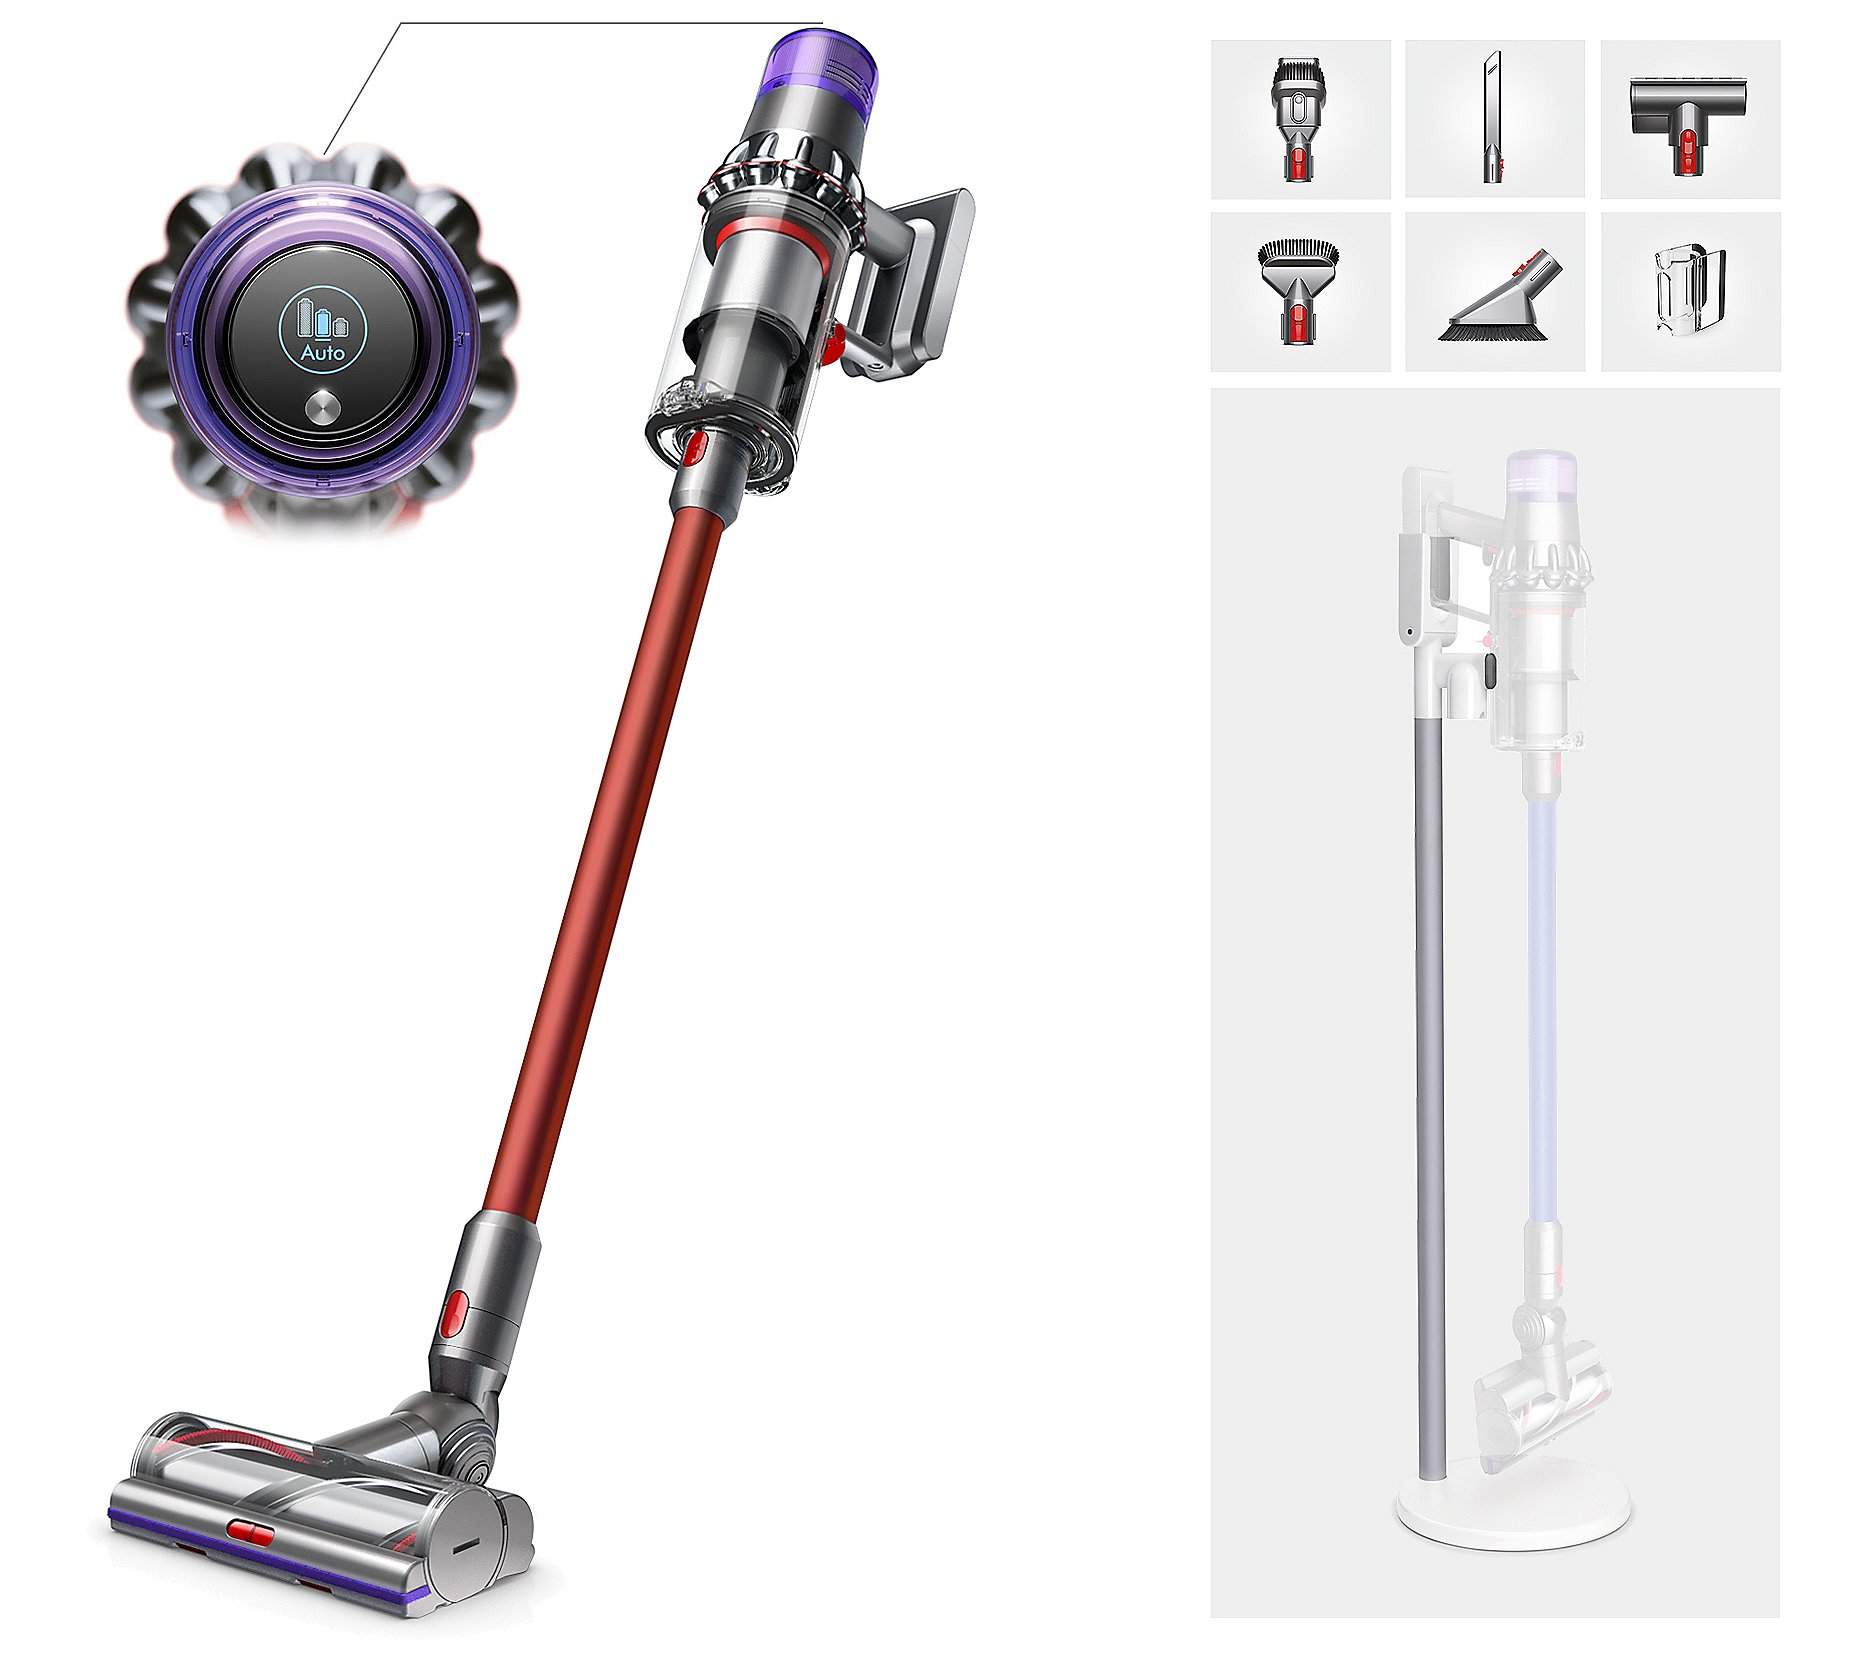 Dyson V11 Torque Drive Cordless Vacuum with Grab-and-Go Floor Dok